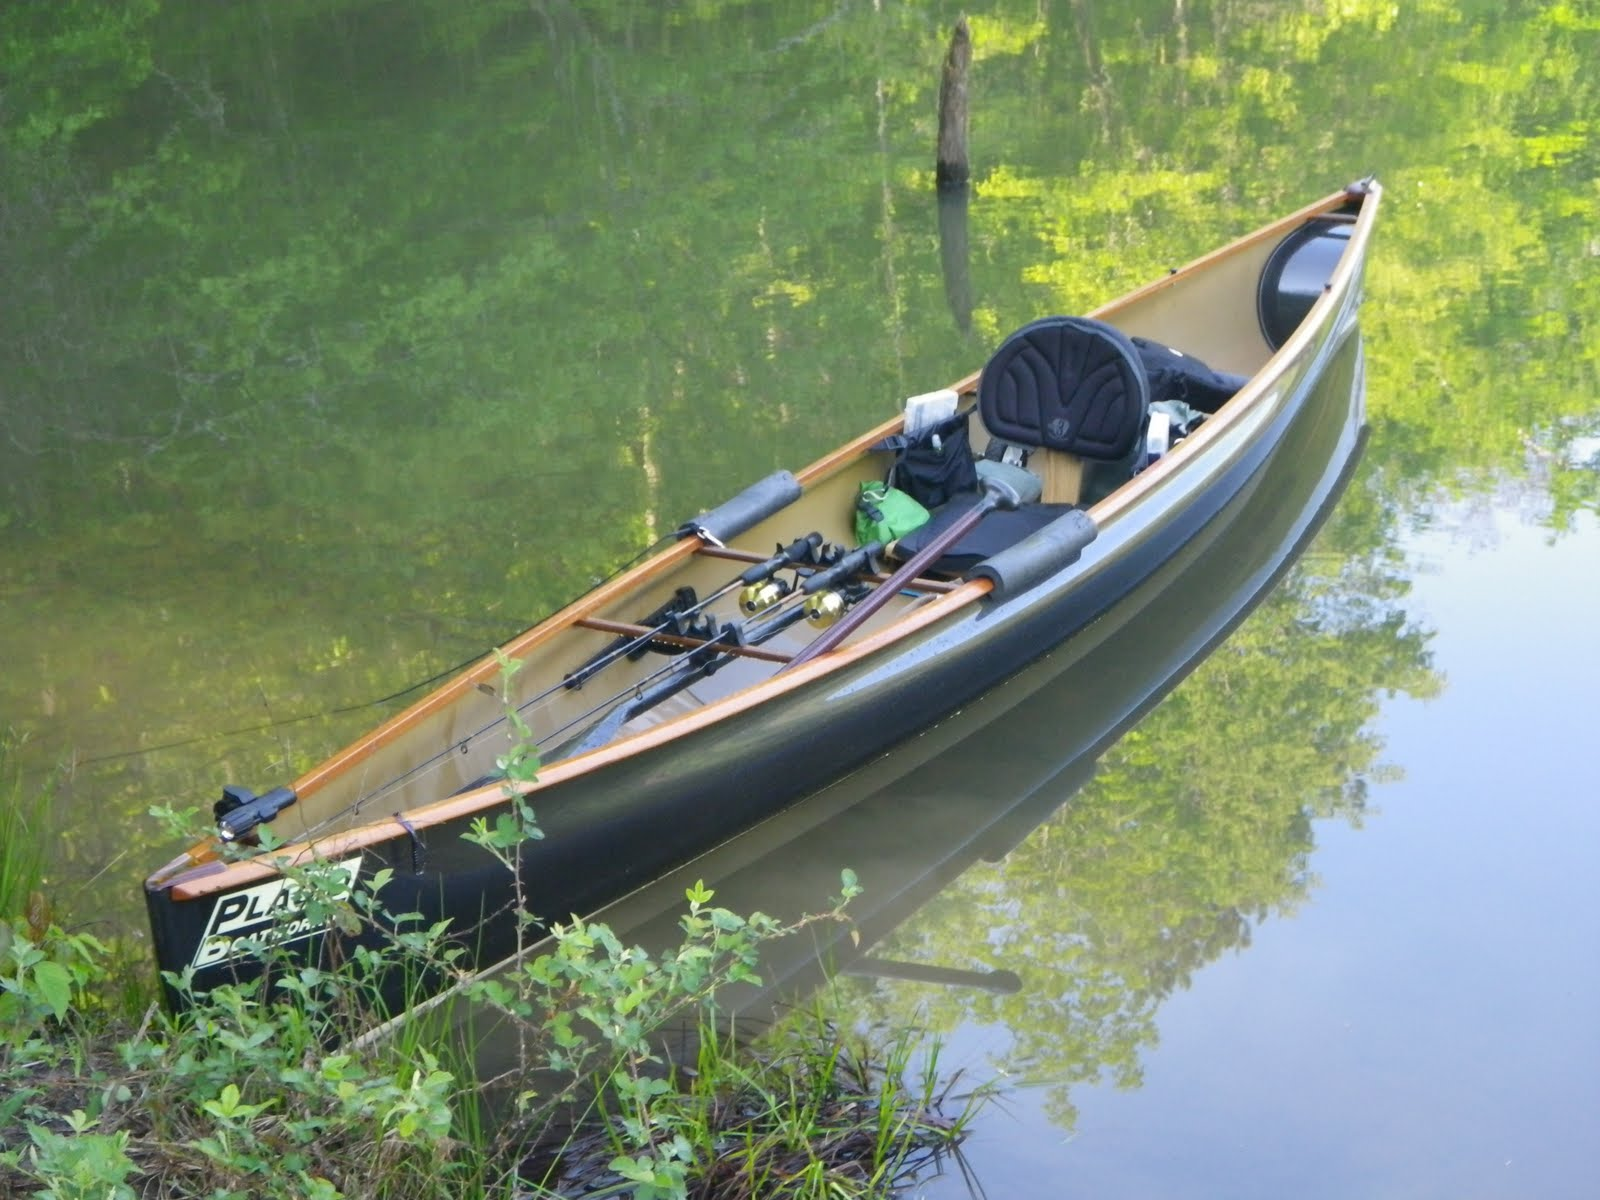 Placid boatworks rapidfire canoe rigged for fishing in wv for Best canoe for fishing